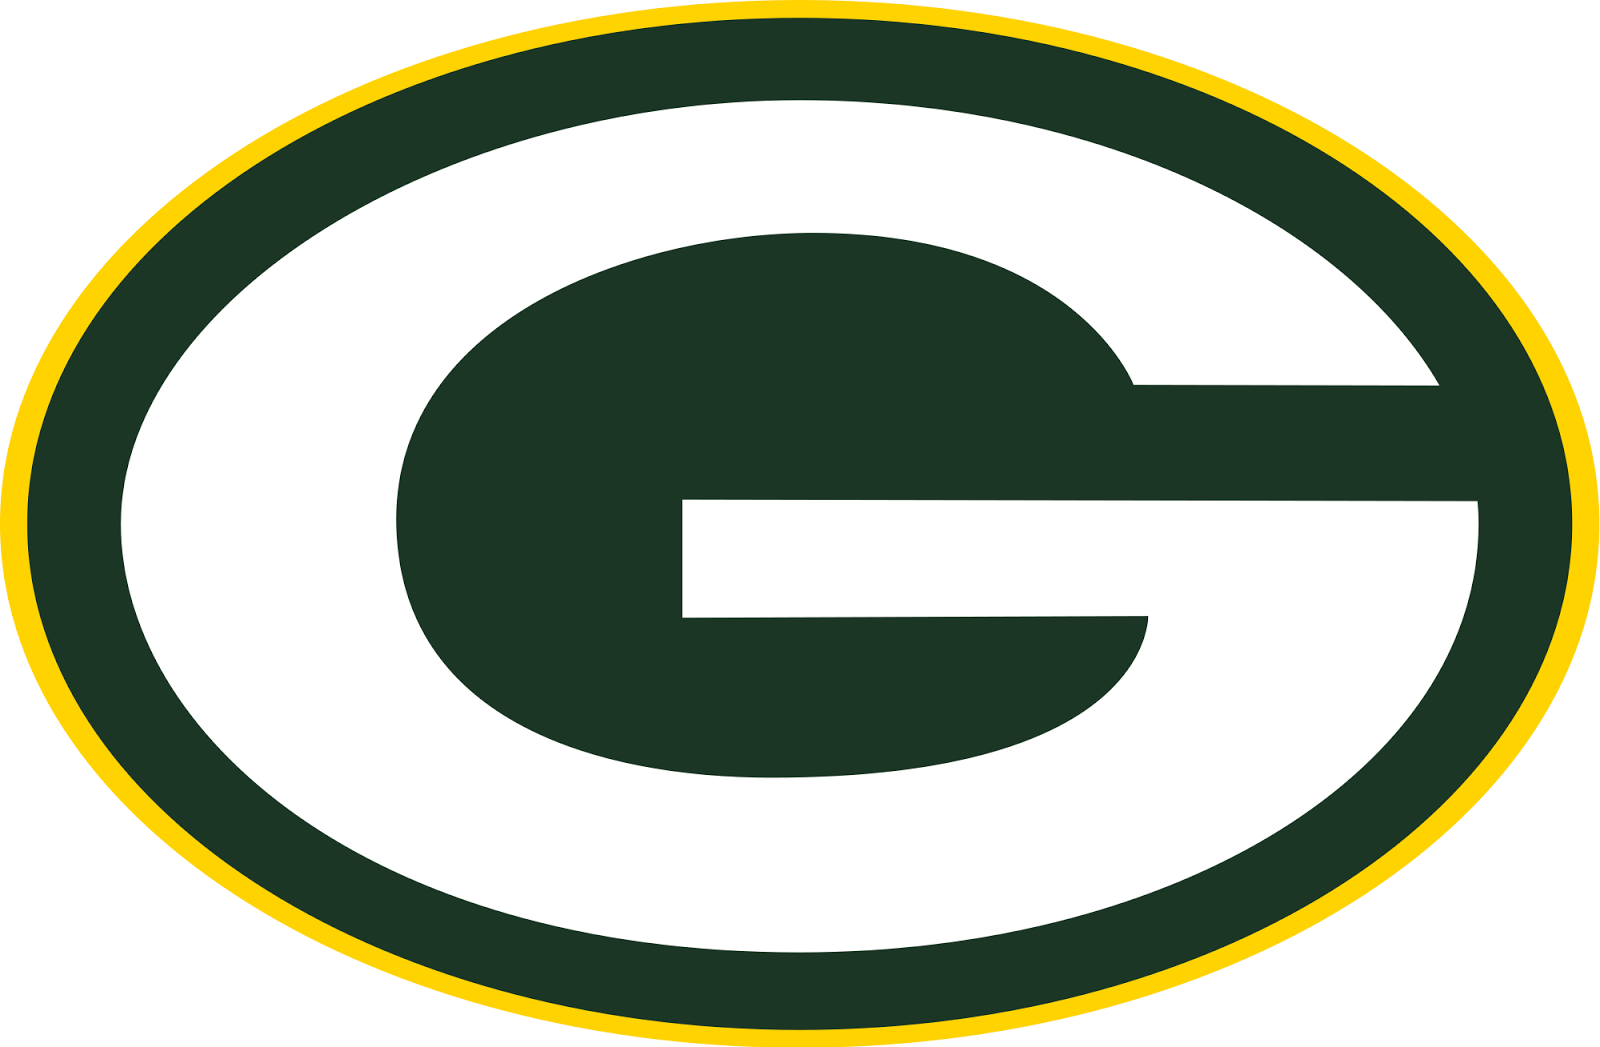 green bay packers - photo #27